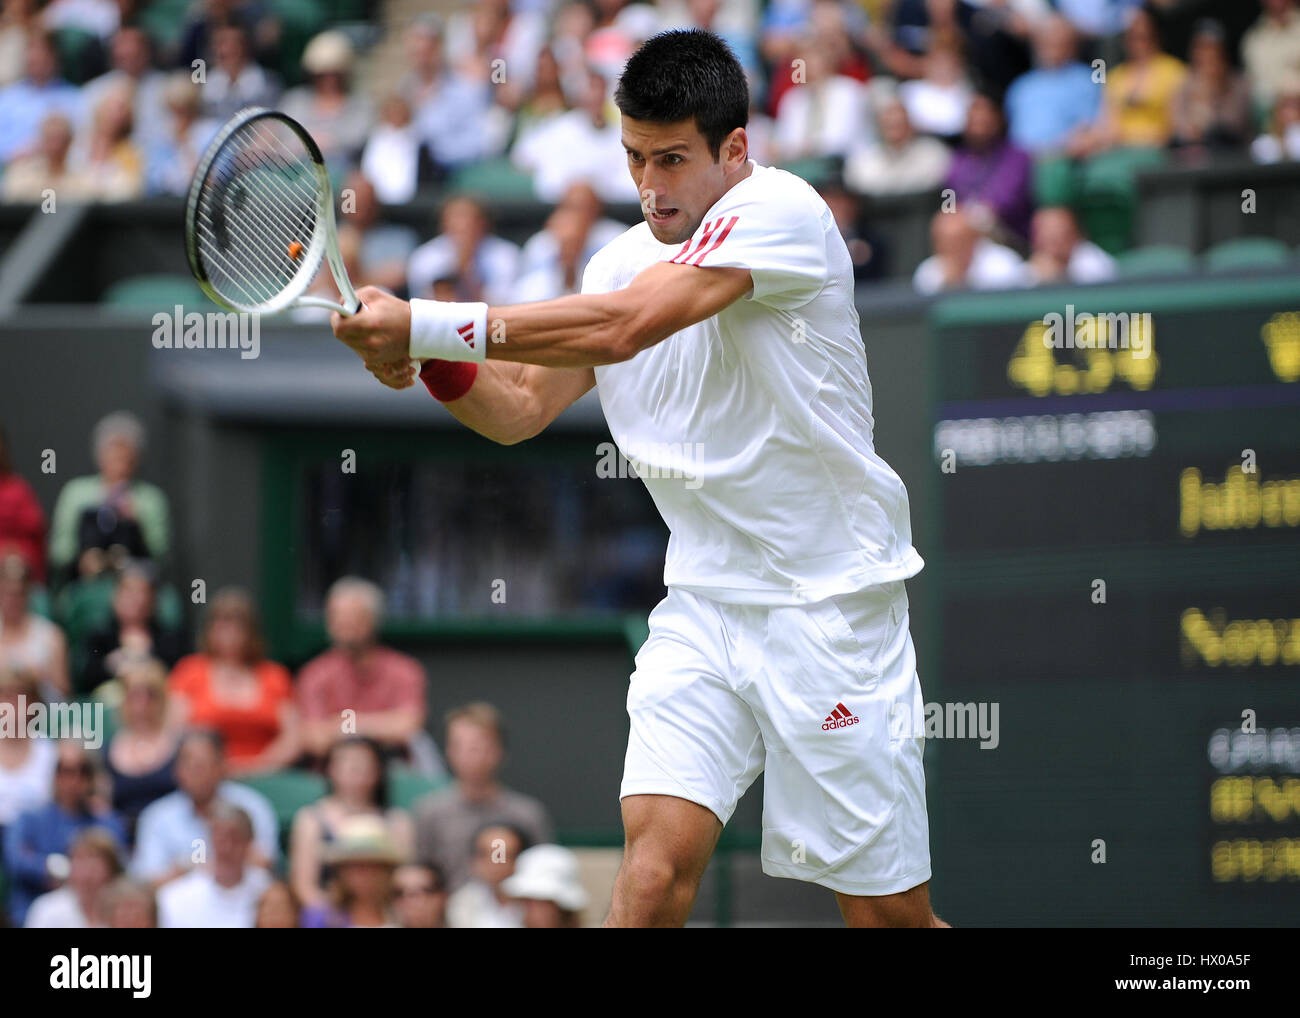 NOVAK DJOKOVIC SERBIA WIMBLEDON LONDON ENGLAND 22 June 2009 - Stock Image